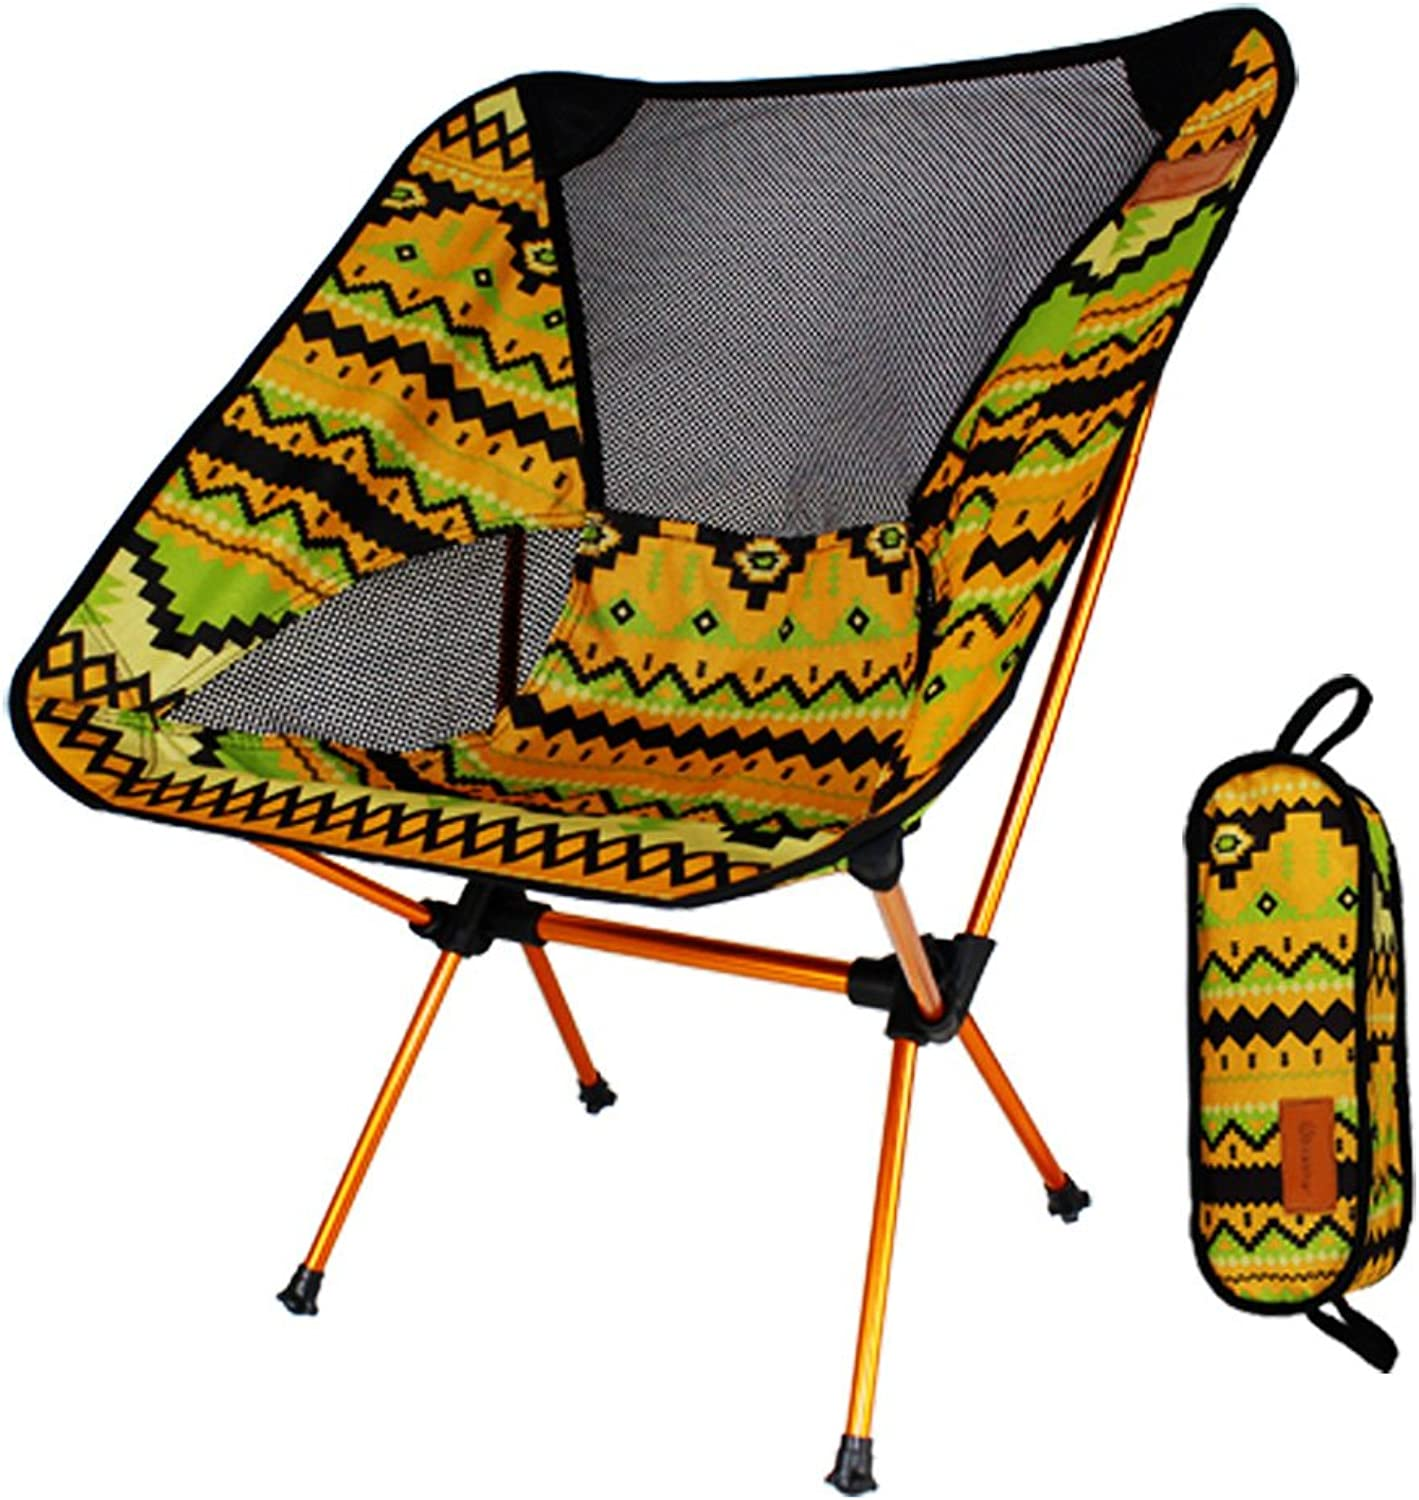 UHBGT Outdoor Folding Leisure Chair Lightweight Portable with Carry Bag for Fishing Picnic Camping BBQ